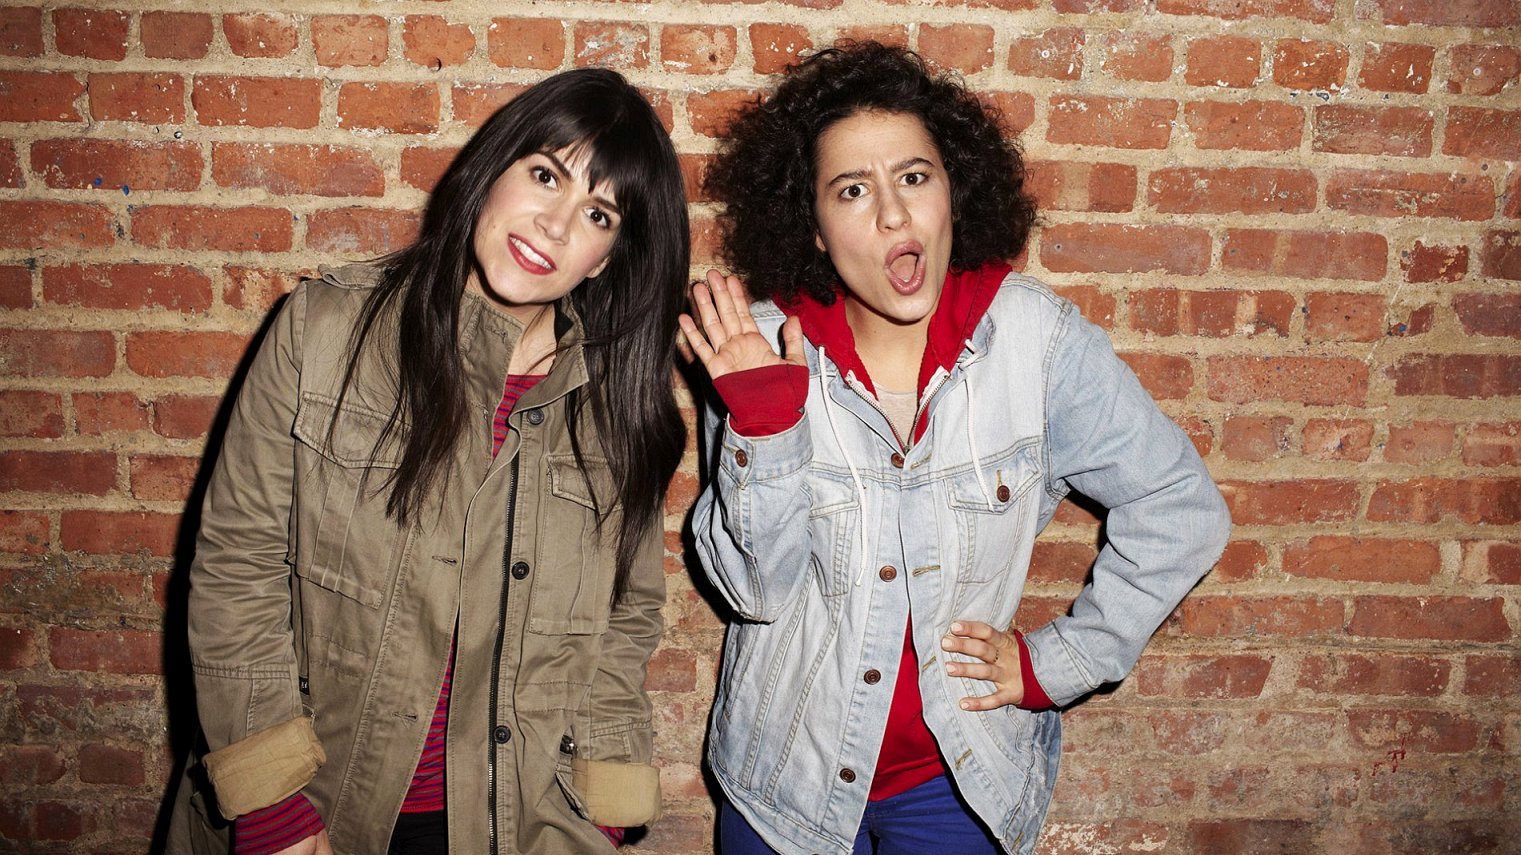 Broad City S5 episode 6 watch online